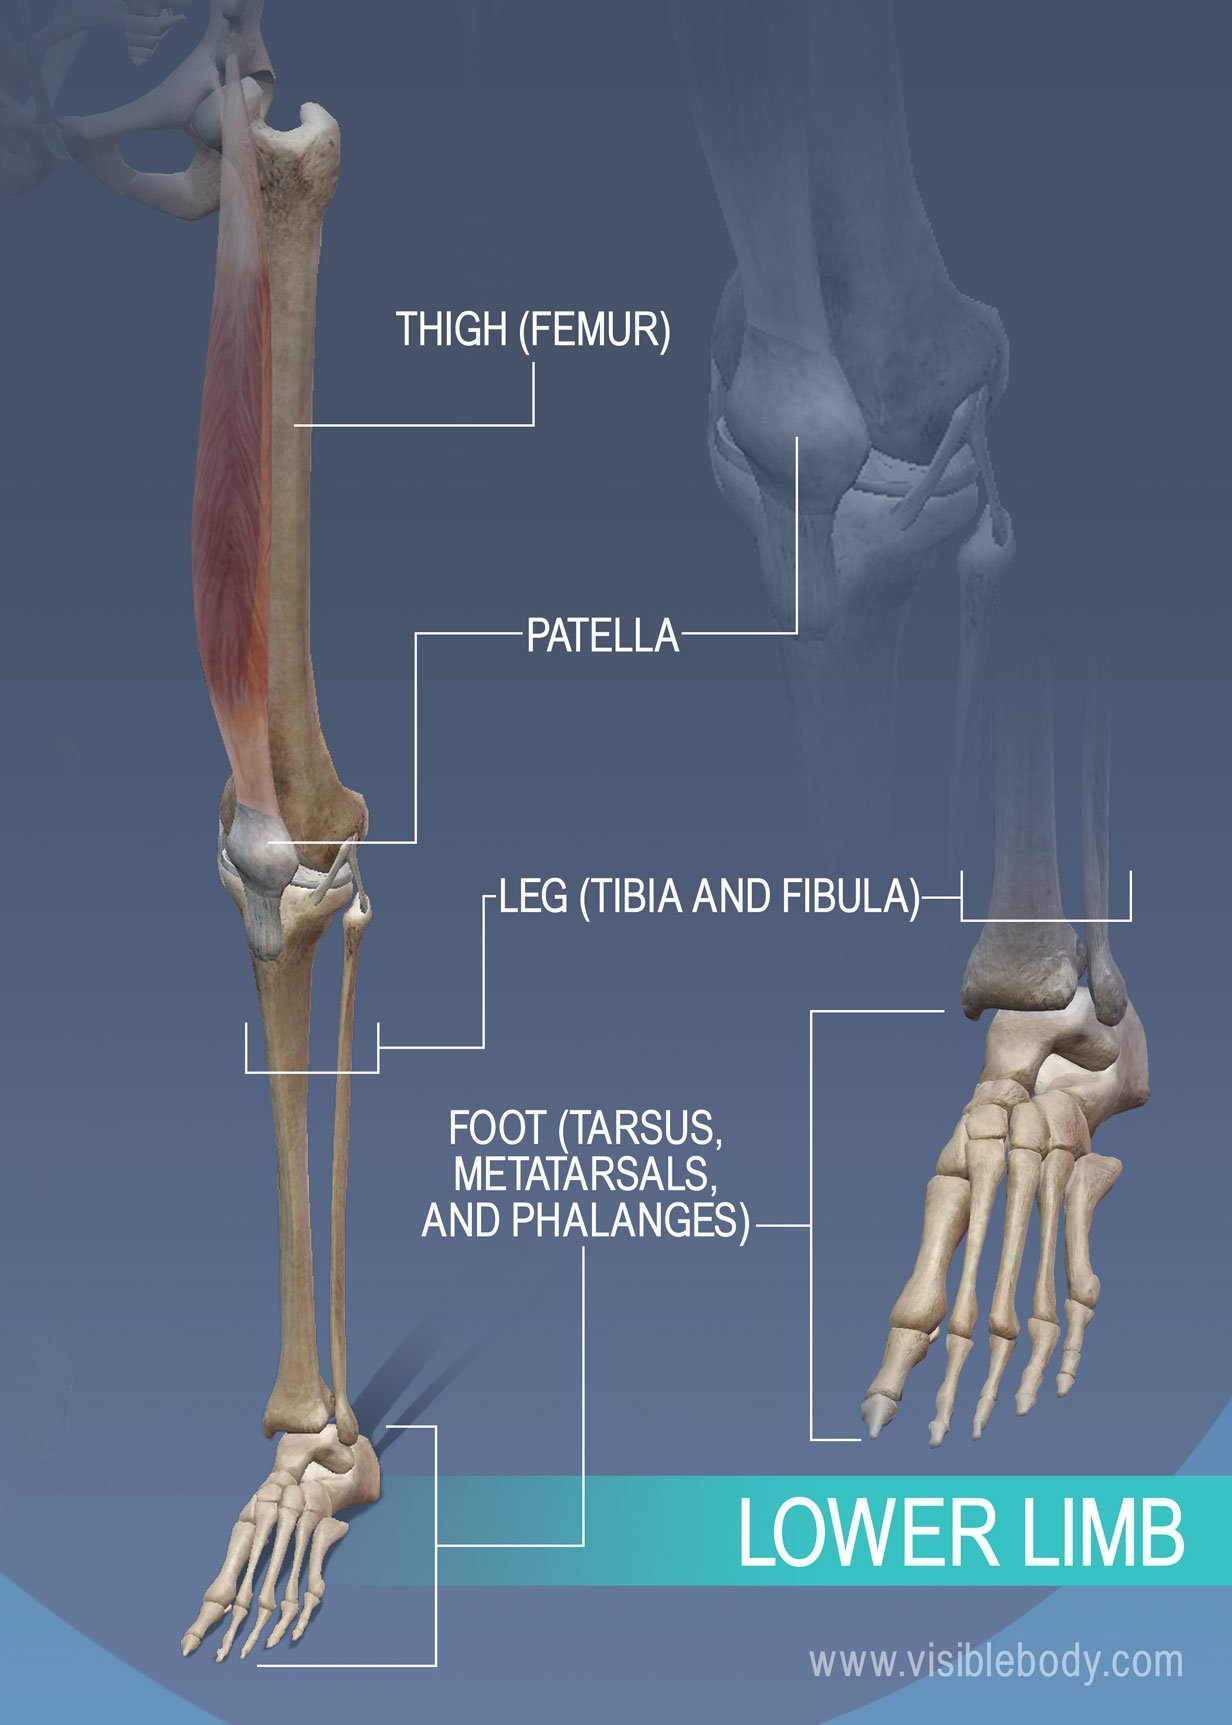 Thigh, leg, and ankle bones of the lower limb